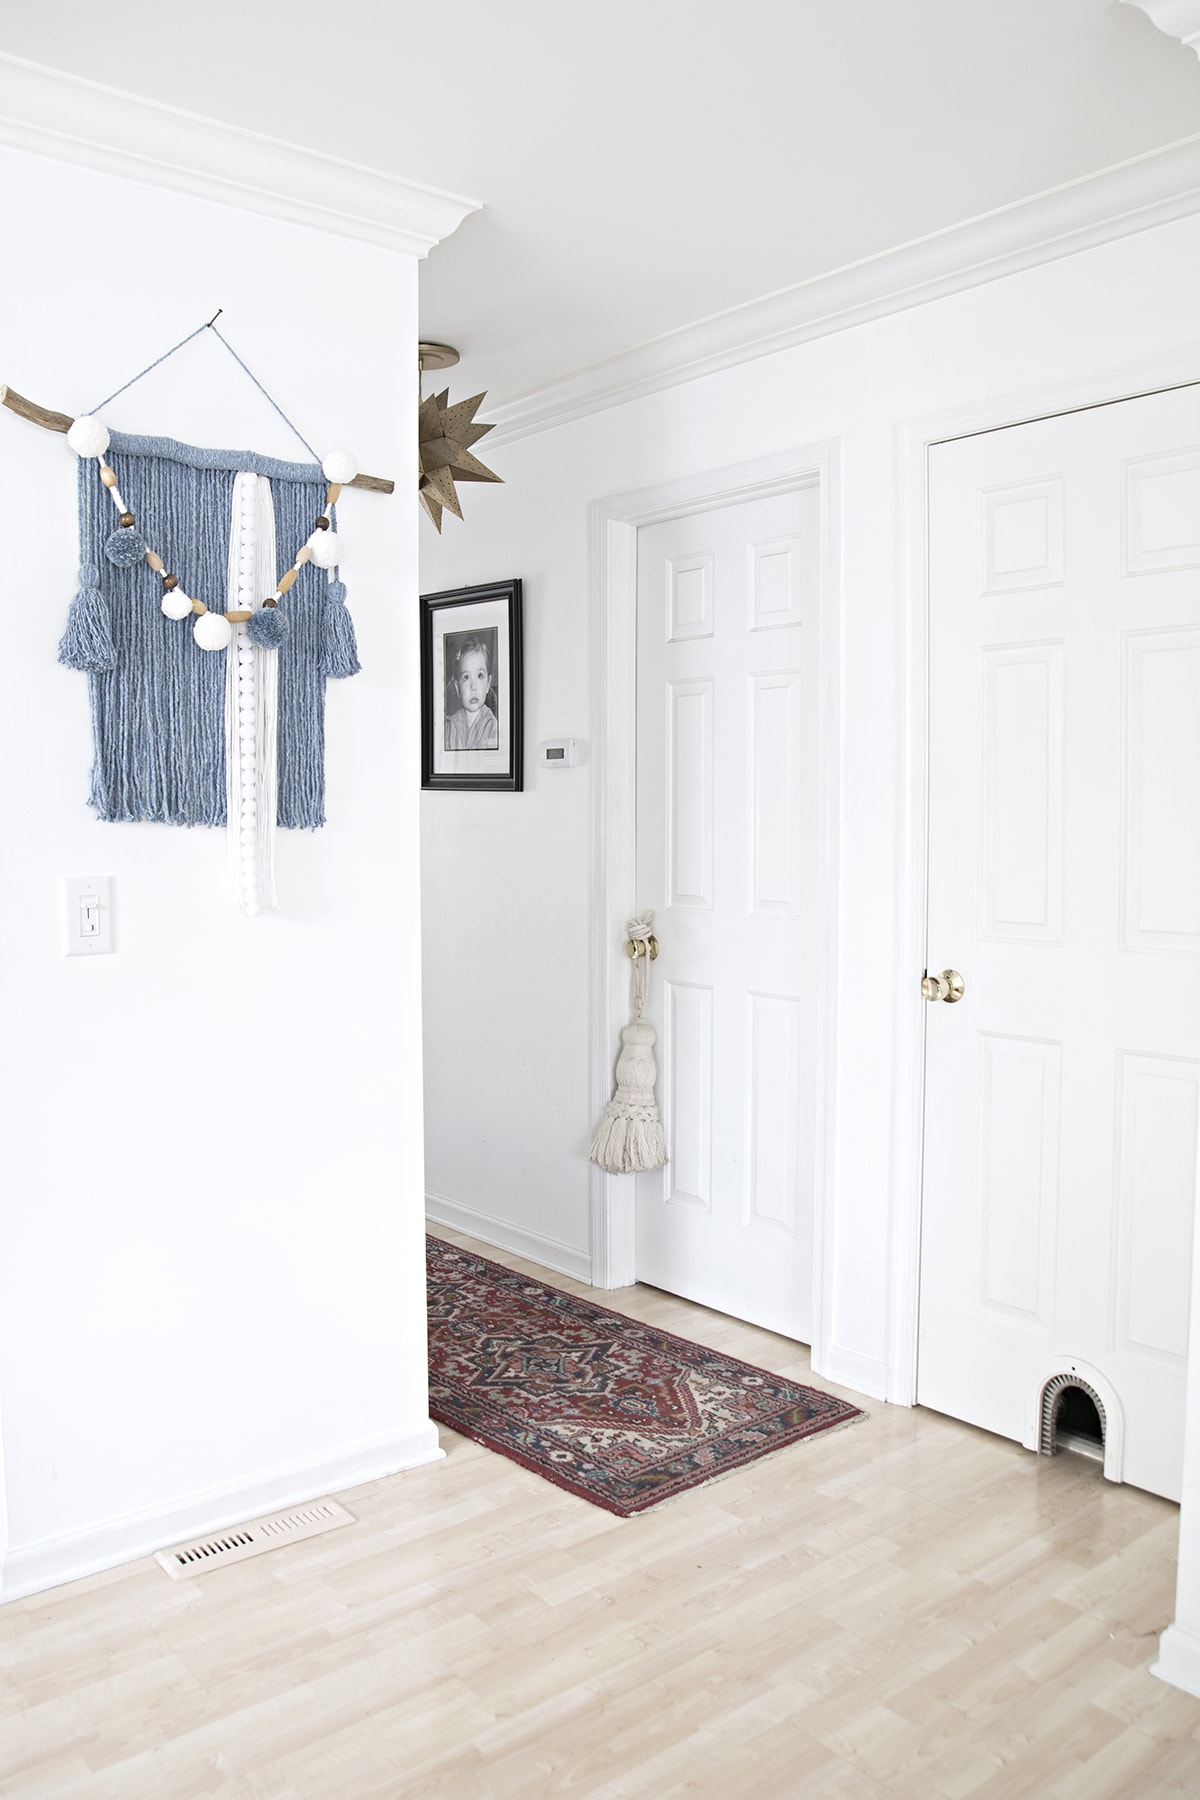 Small visual home changes with a big impact